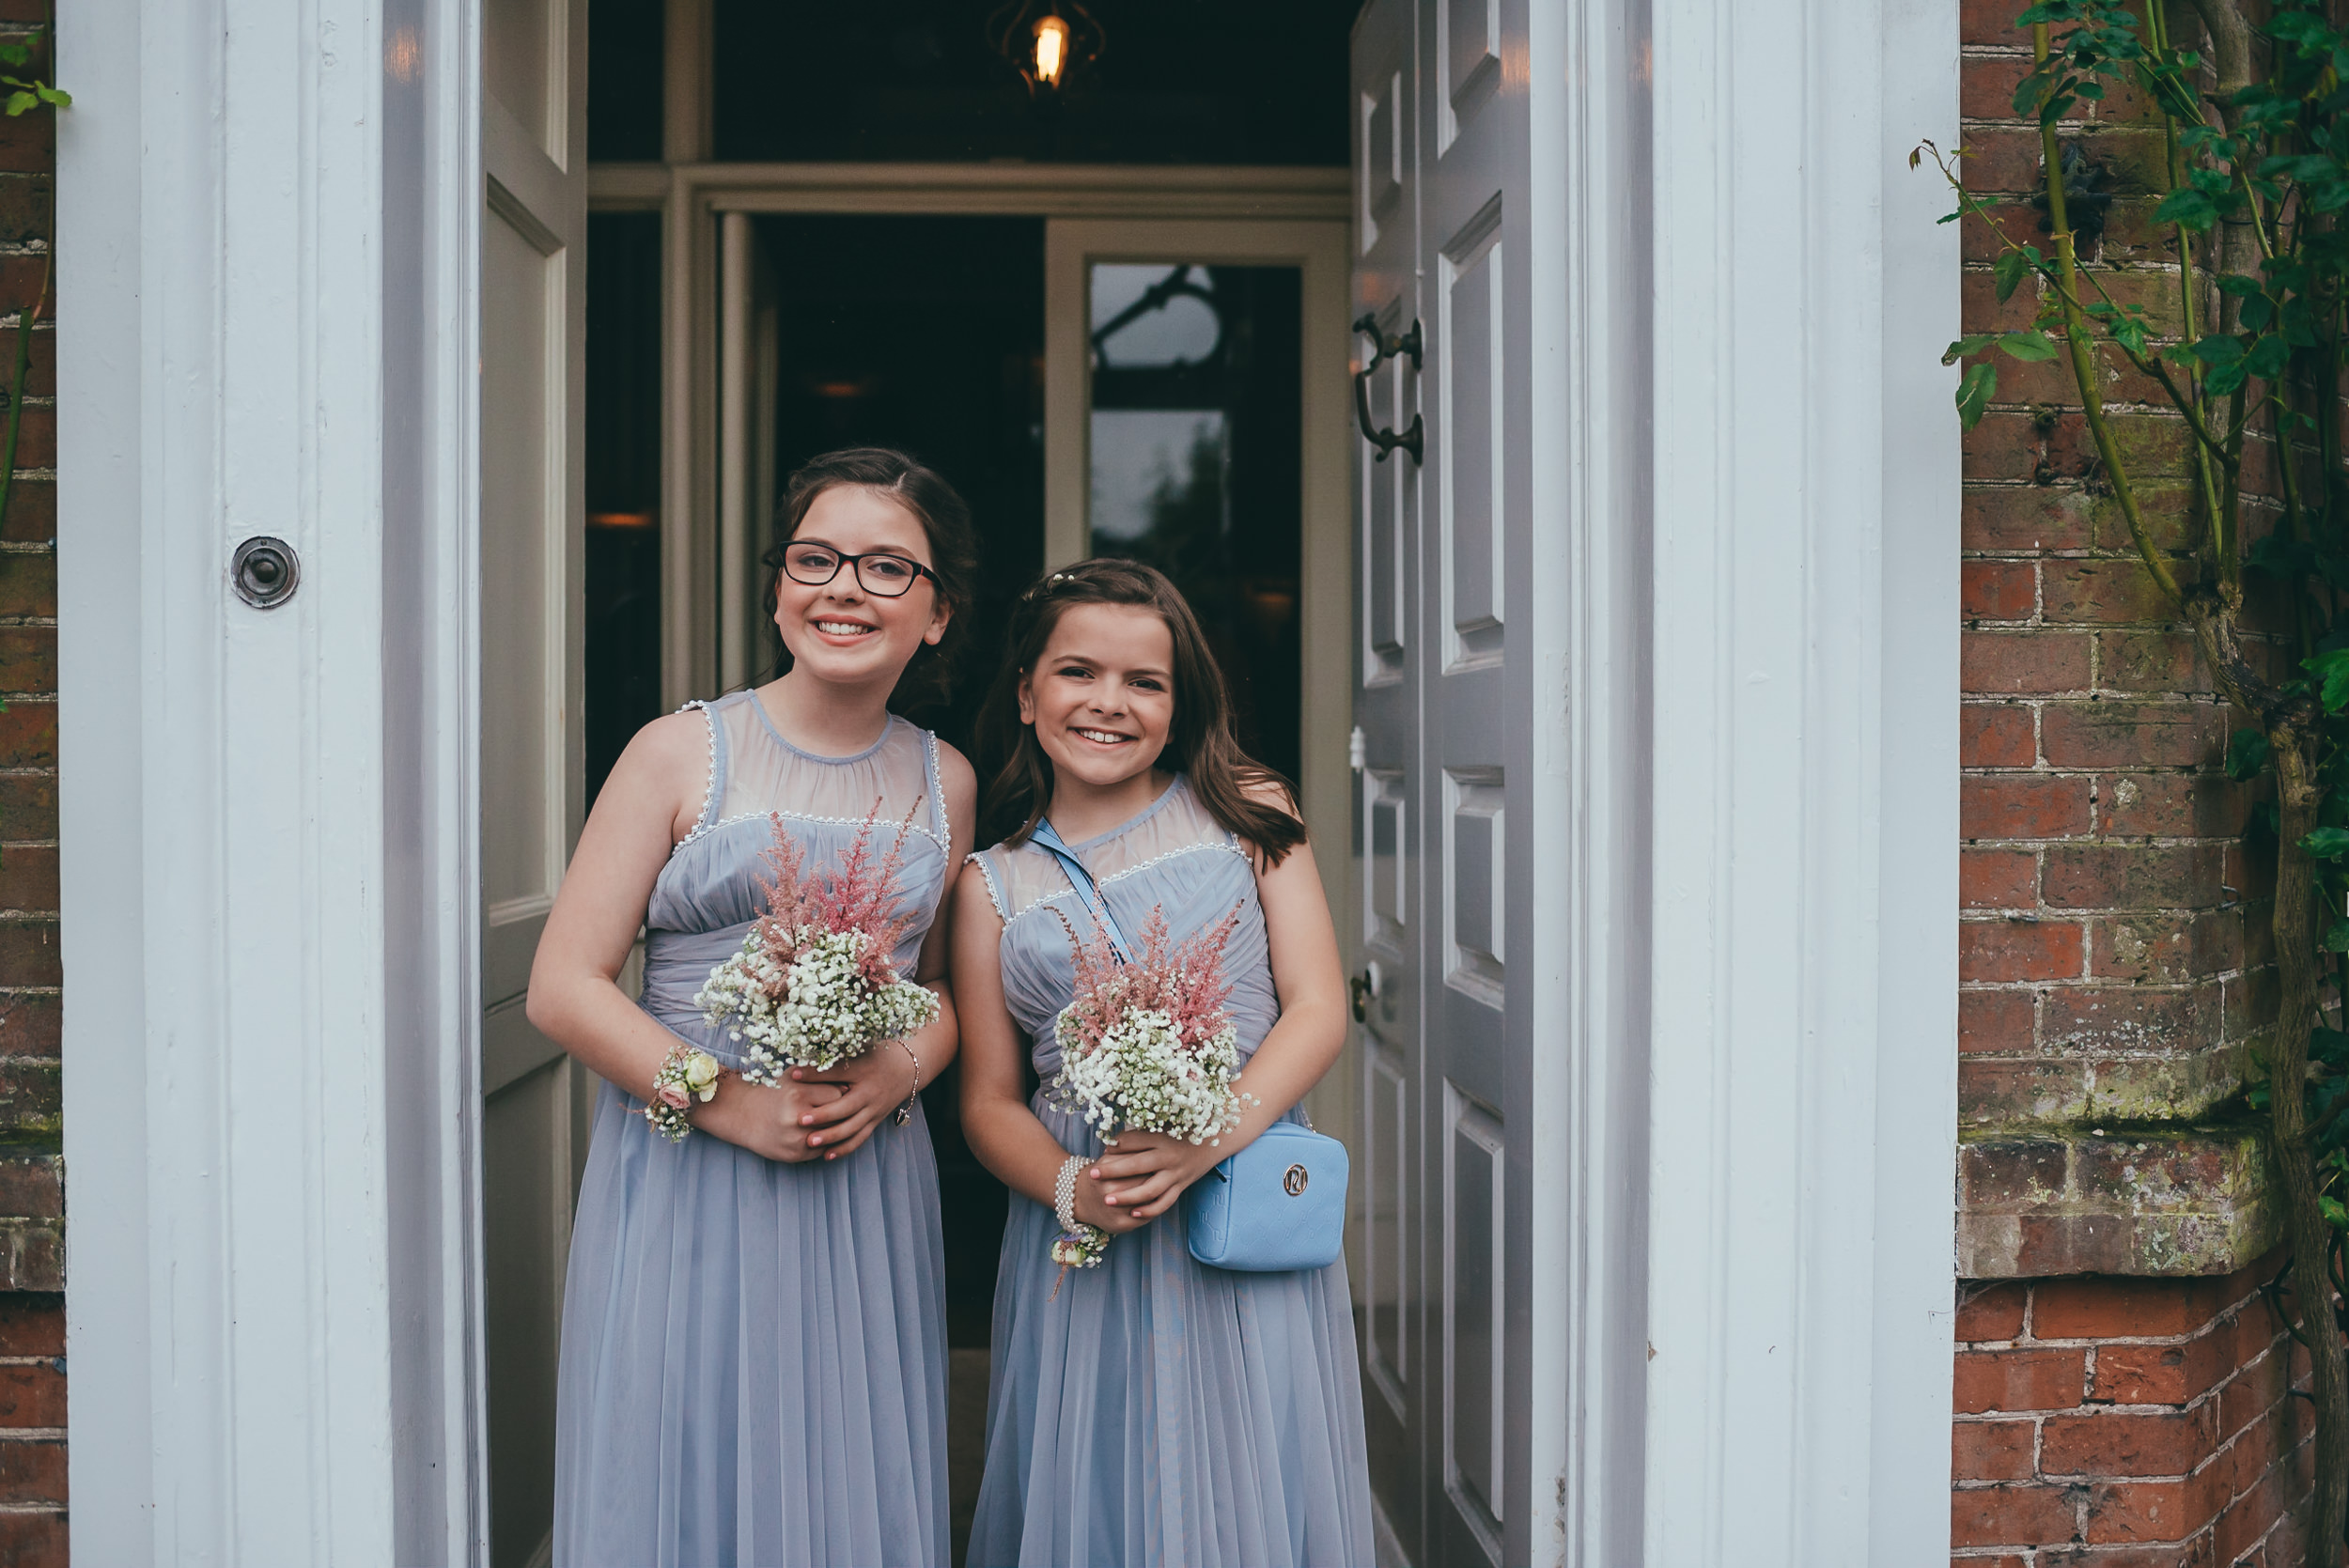 Photograph of two bridesmaids